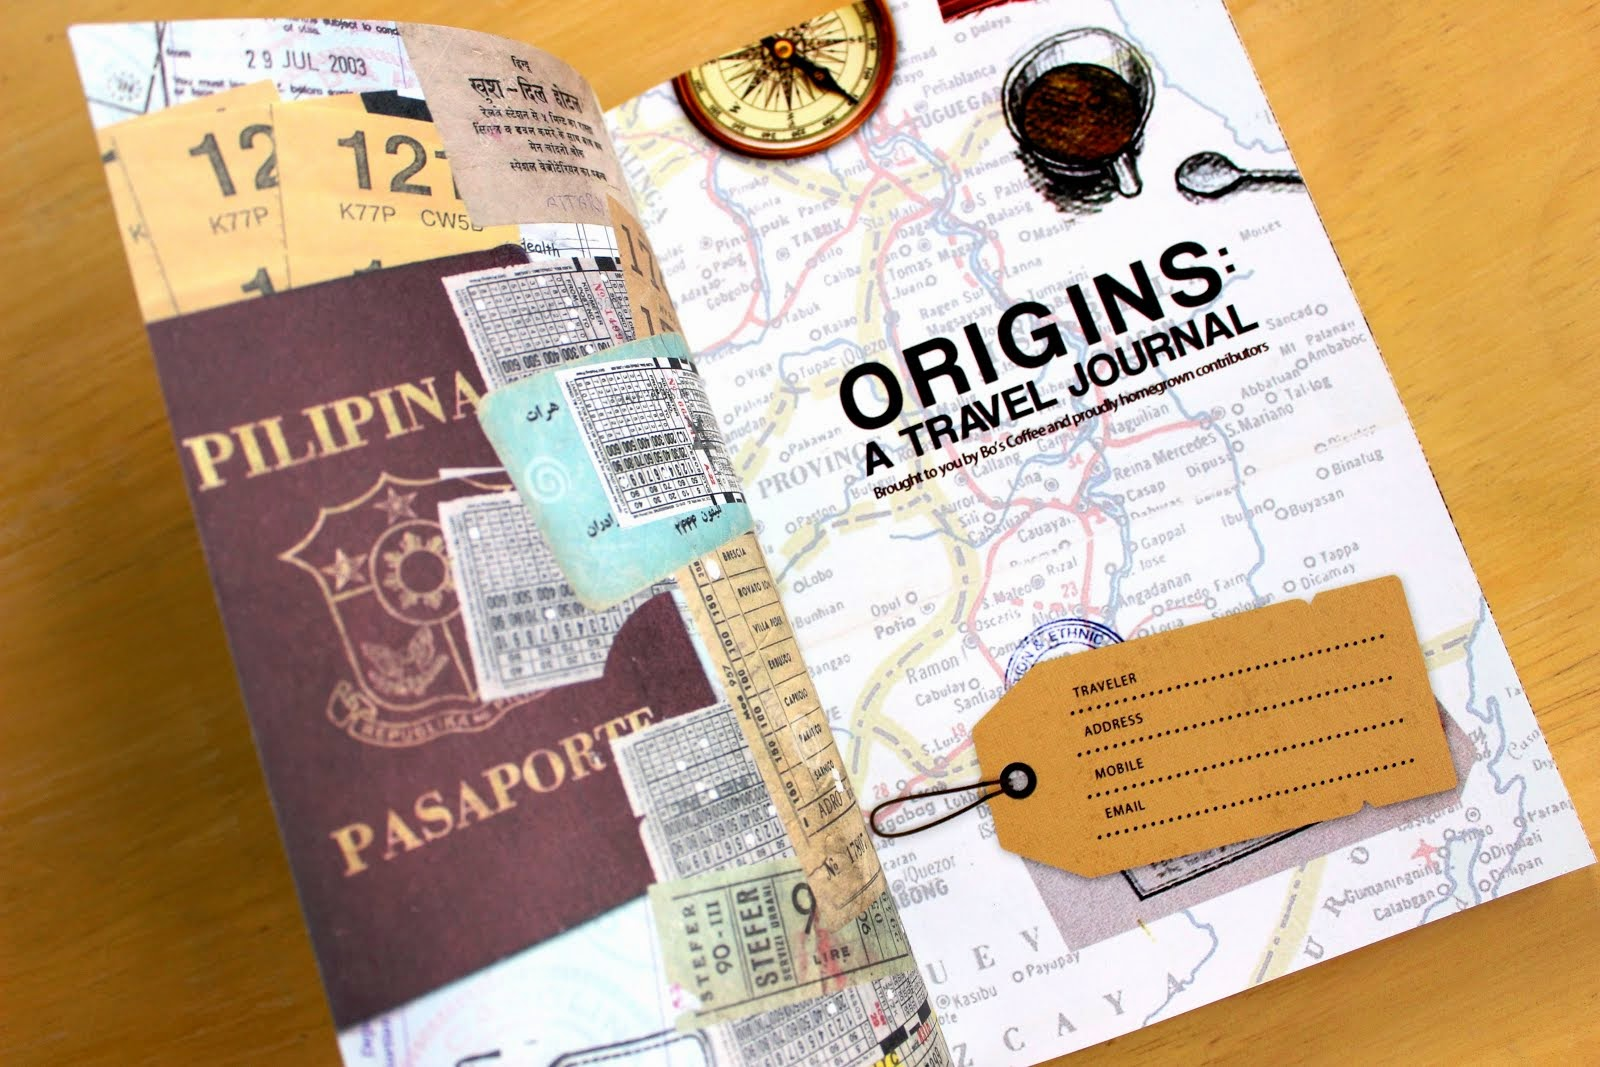 ORIGINS: A TRAVEL JOURNAL